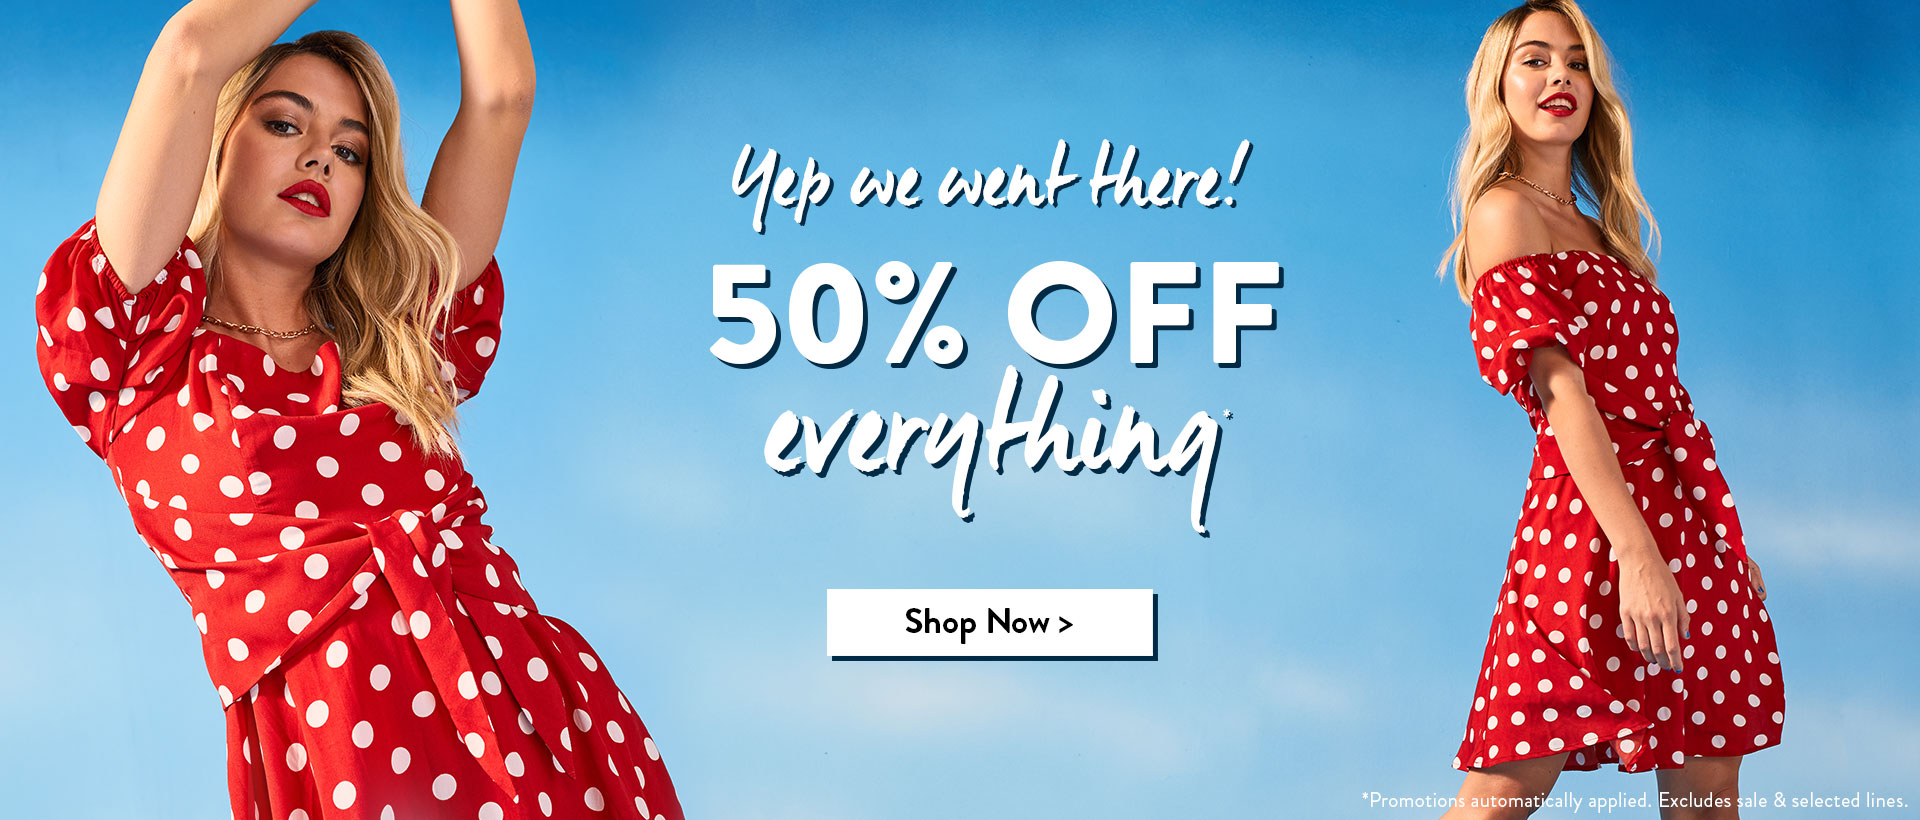 Clothes | Women\'s & Men\'s Clothing & Fashion | Online Shopping – boohoo